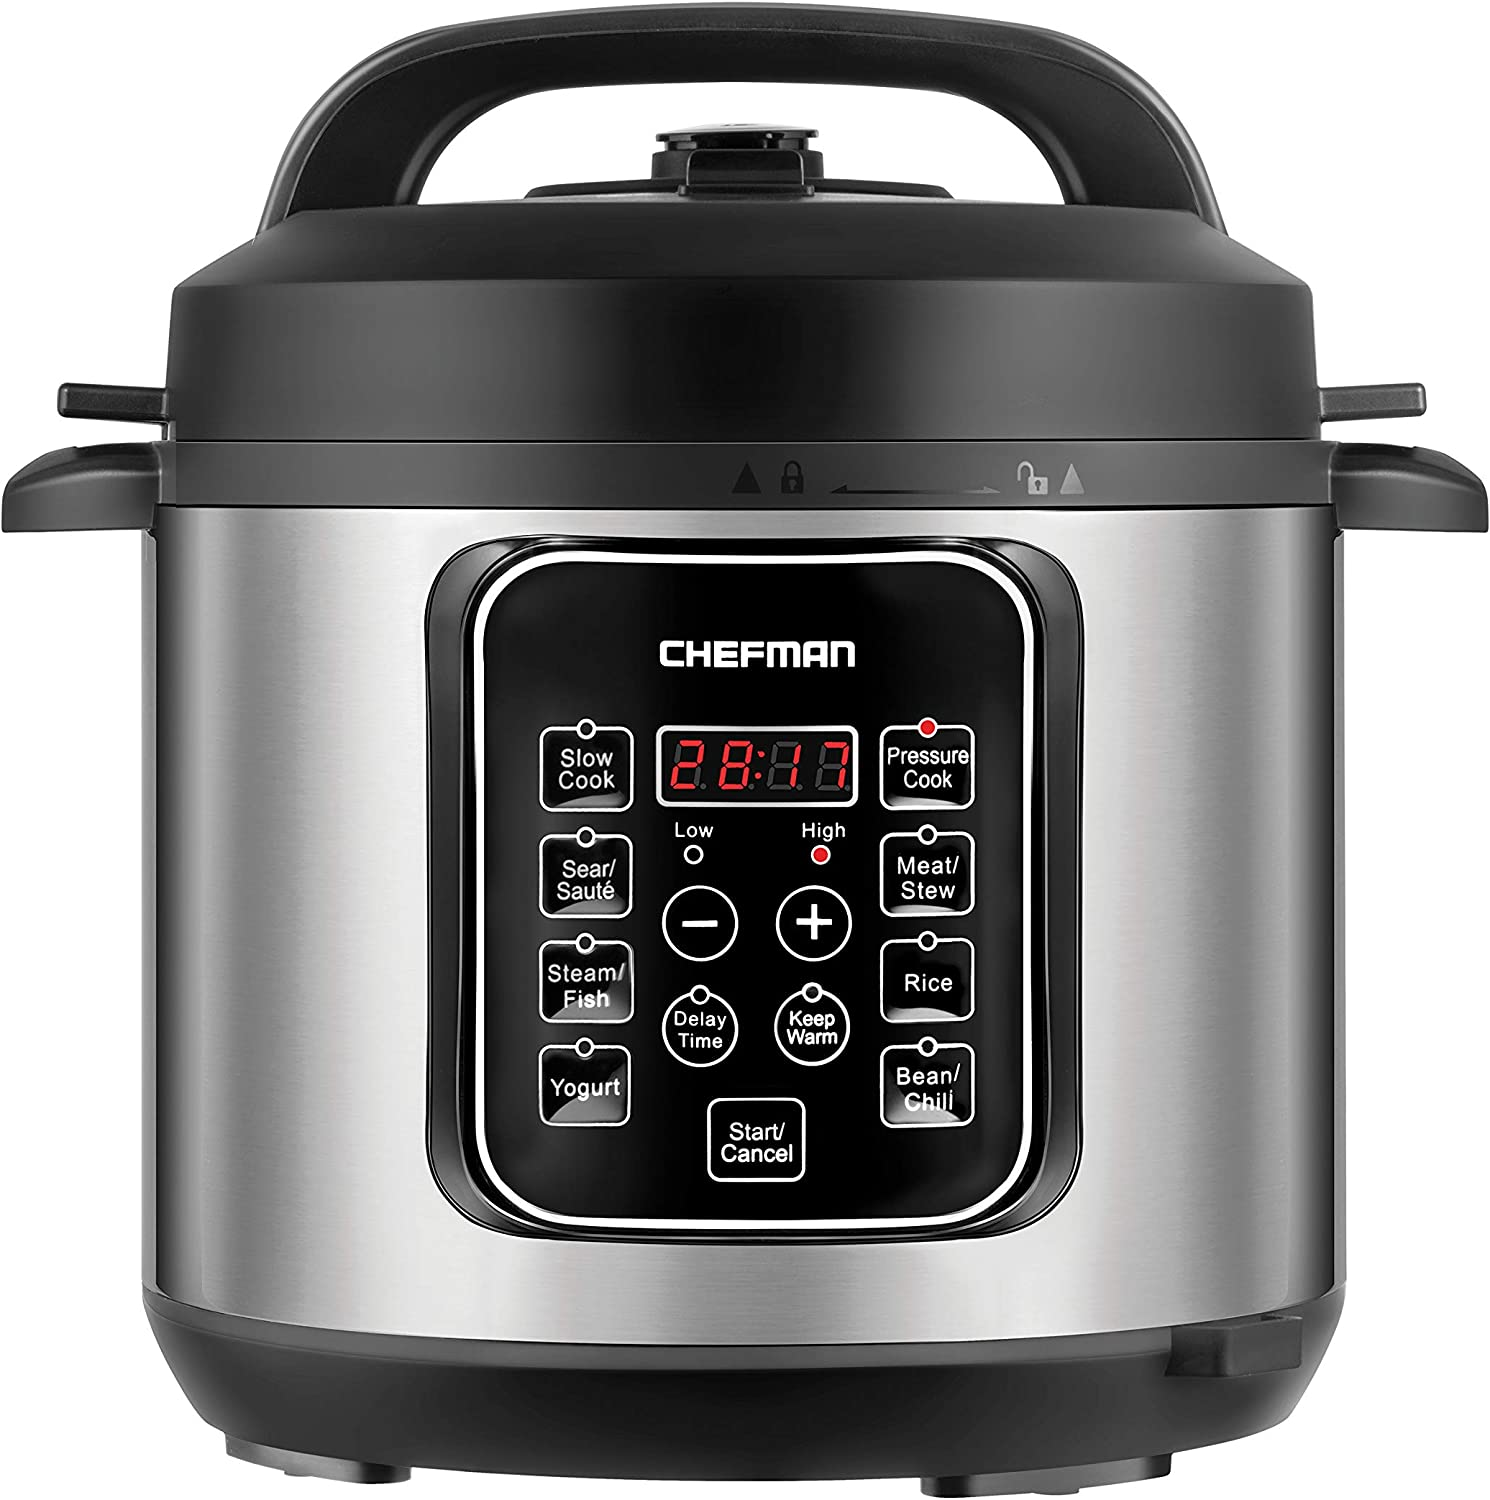 Chefman 6 Quart Electric Multicooker, Cook Slow, Rice-Cooker, Food Steamer, Sauté, Yogurt, Soup/Broth Maker, Makes Meals in Minutes, 14 Presets, Stainless Steel